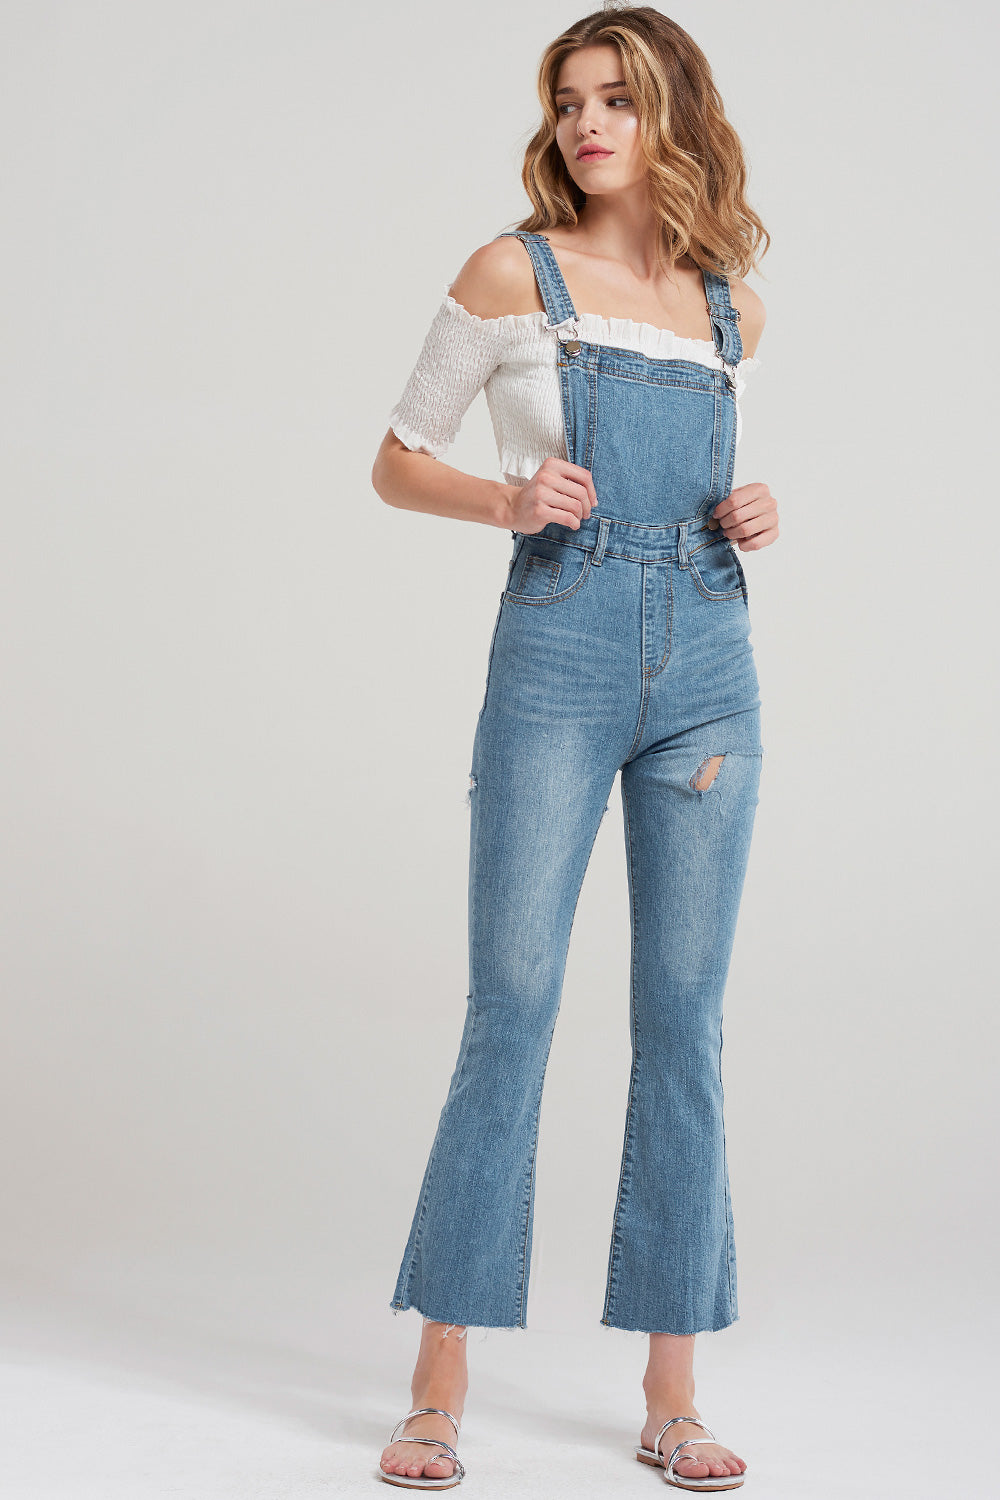 Ellie Denim Overalls-Blue